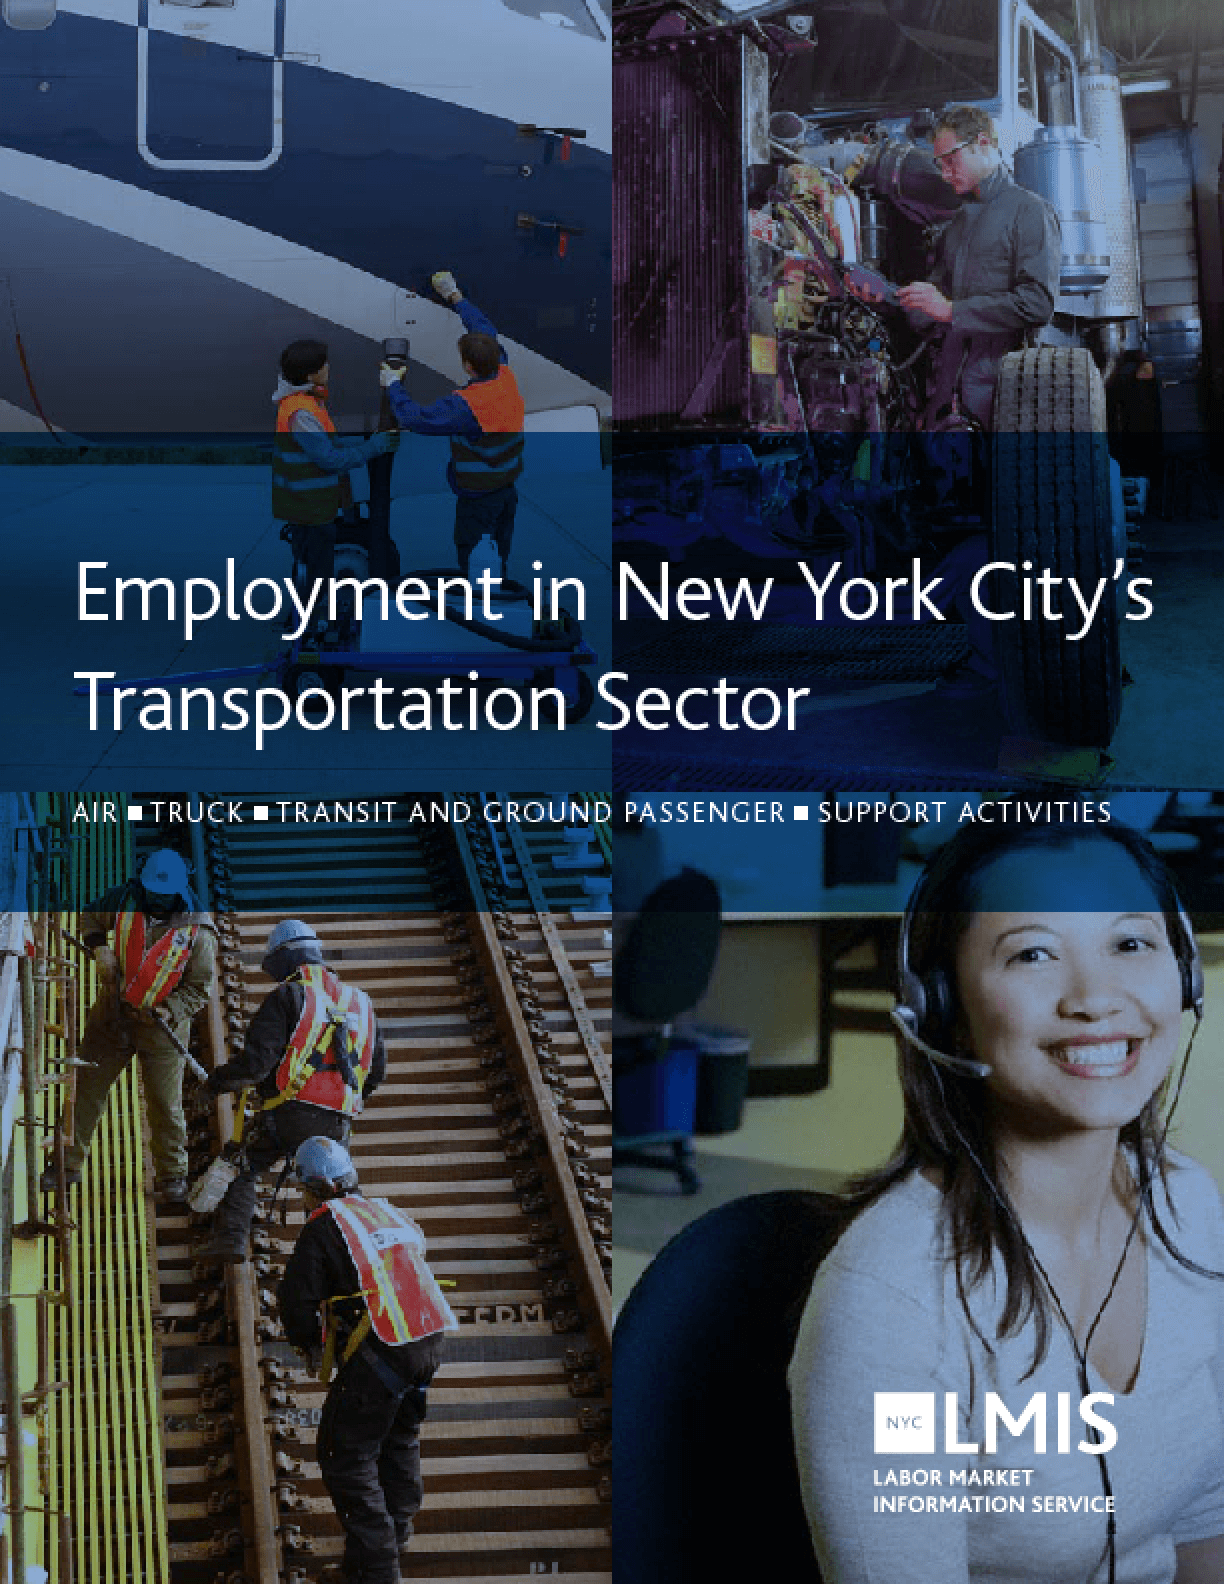 Employment in New York City's Transportation Sector